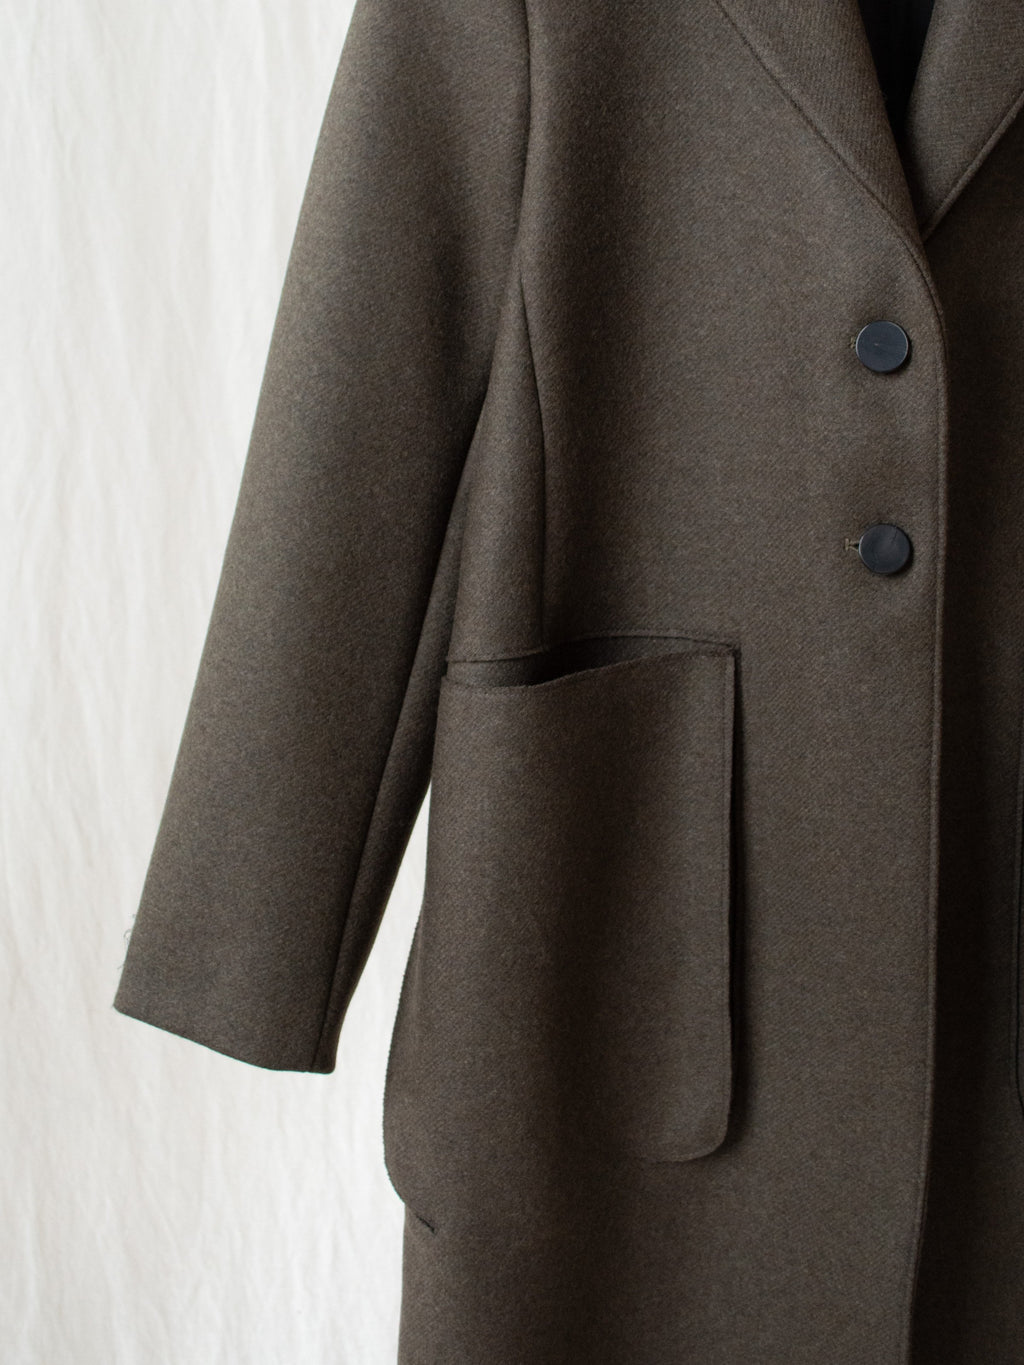 Namu Shop - Studio Nicholson Ounce Coat in Double Faced Wool - Forest Green